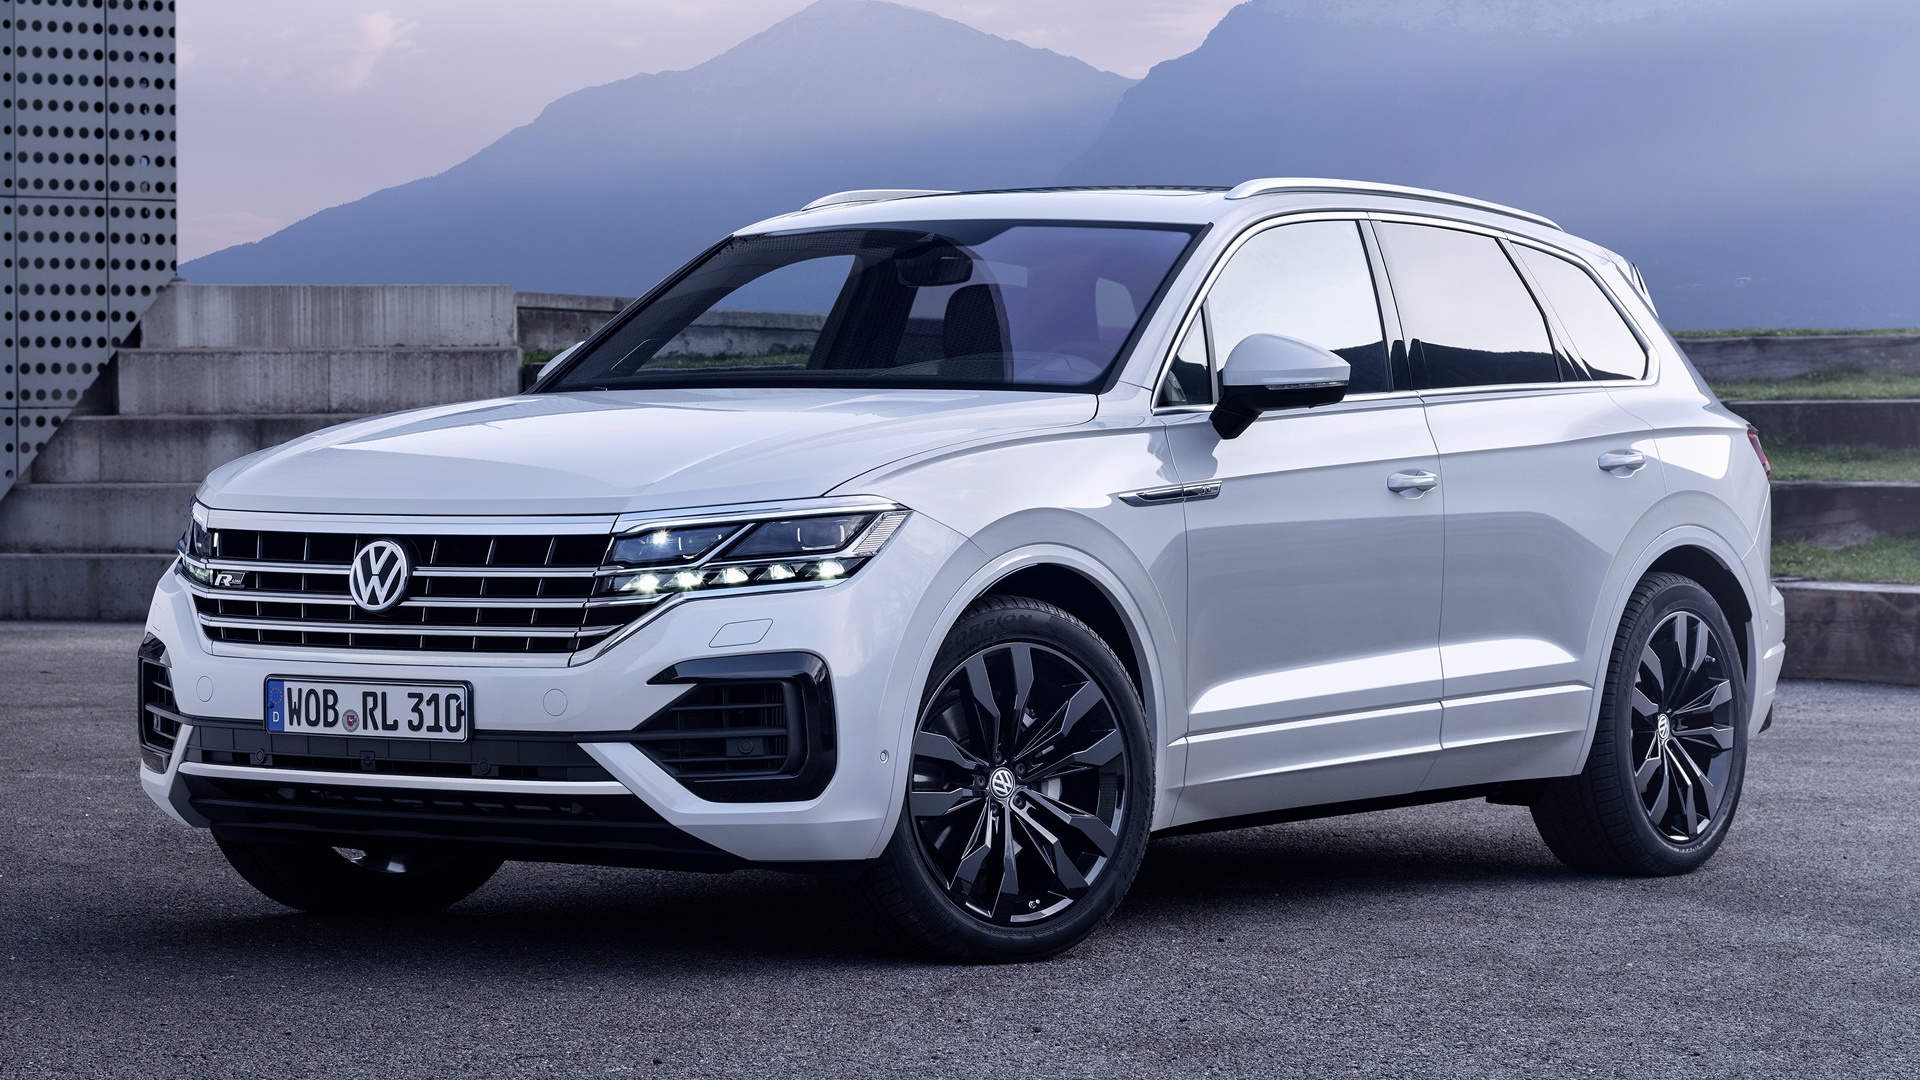 Tuning Cars Wallpapers Hd 2018 Volkswagen Touareg R Line Wallpapers And Hd Images